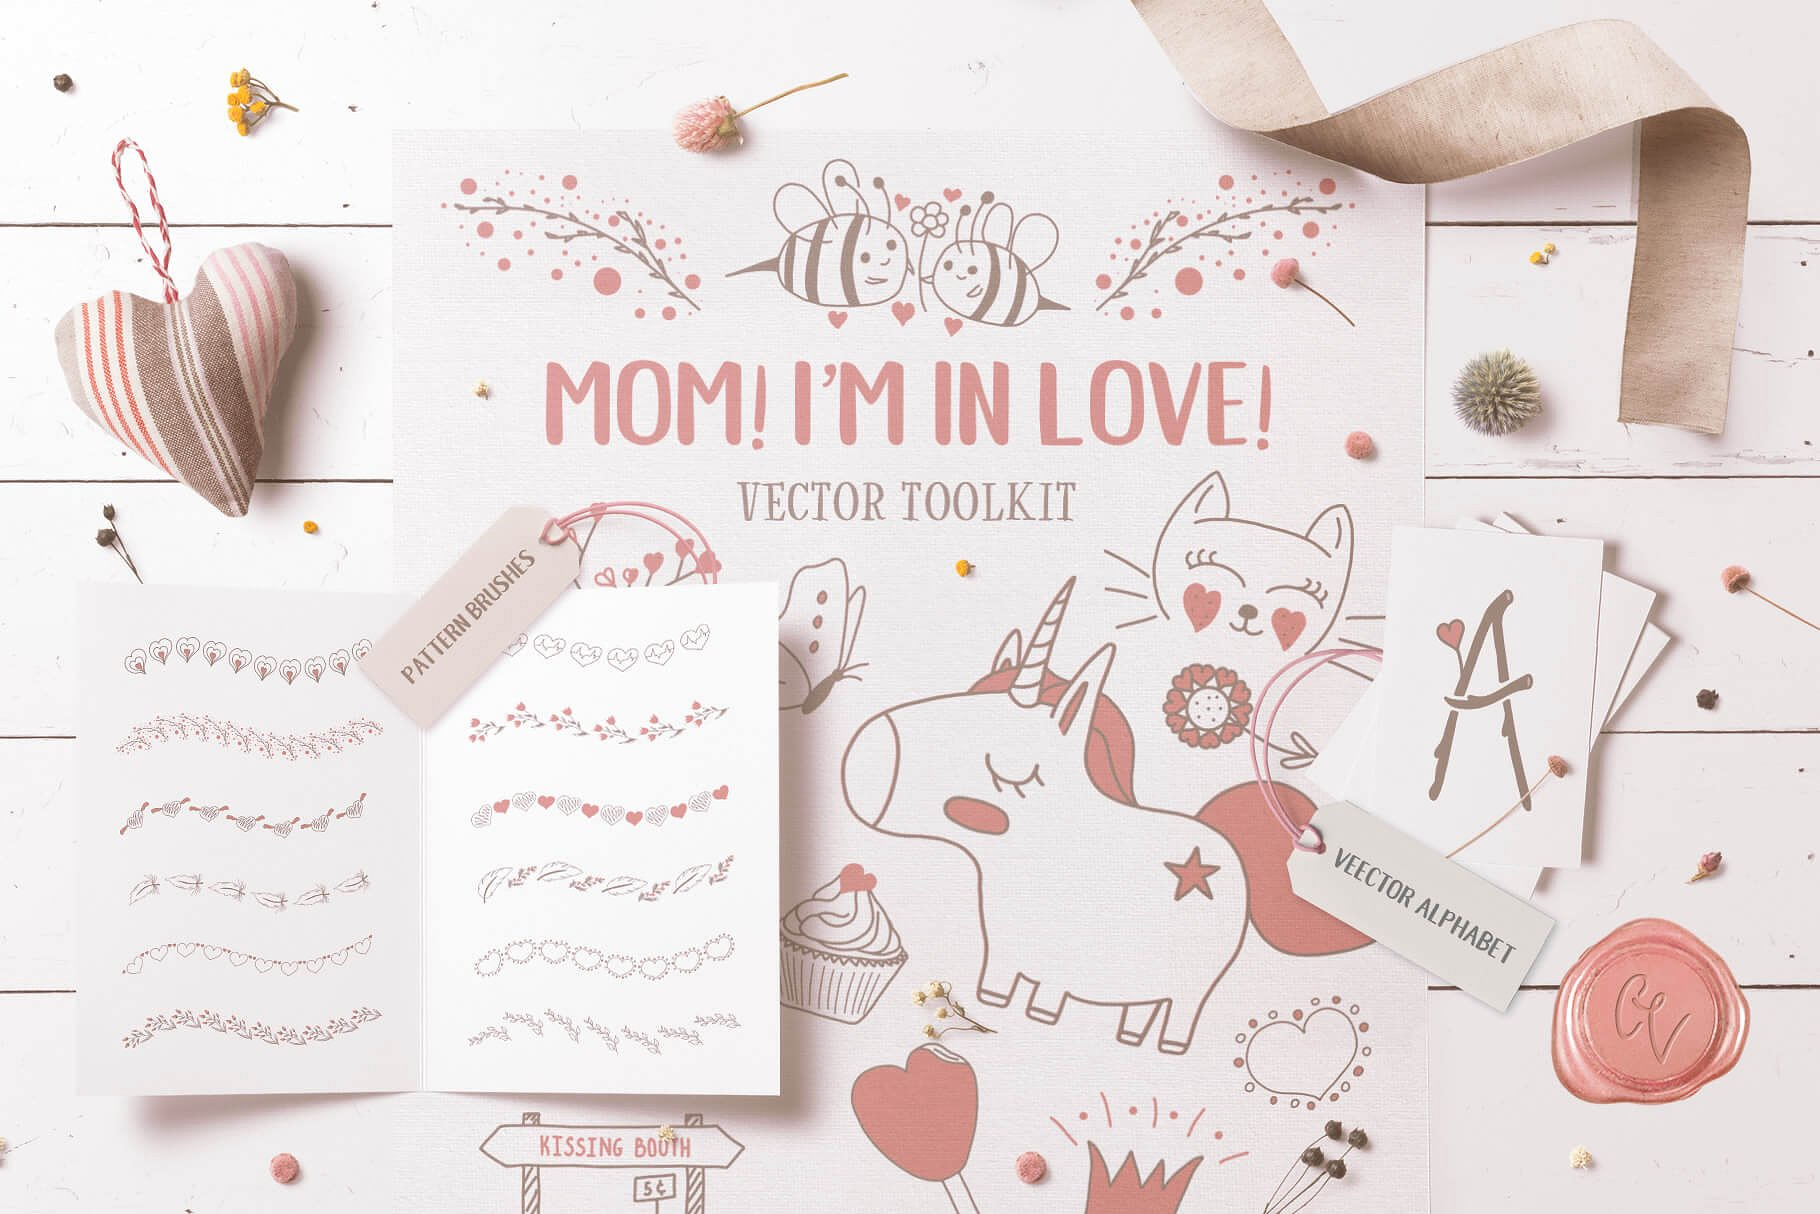 Mom! I'm in Love! Vector Set example image 1